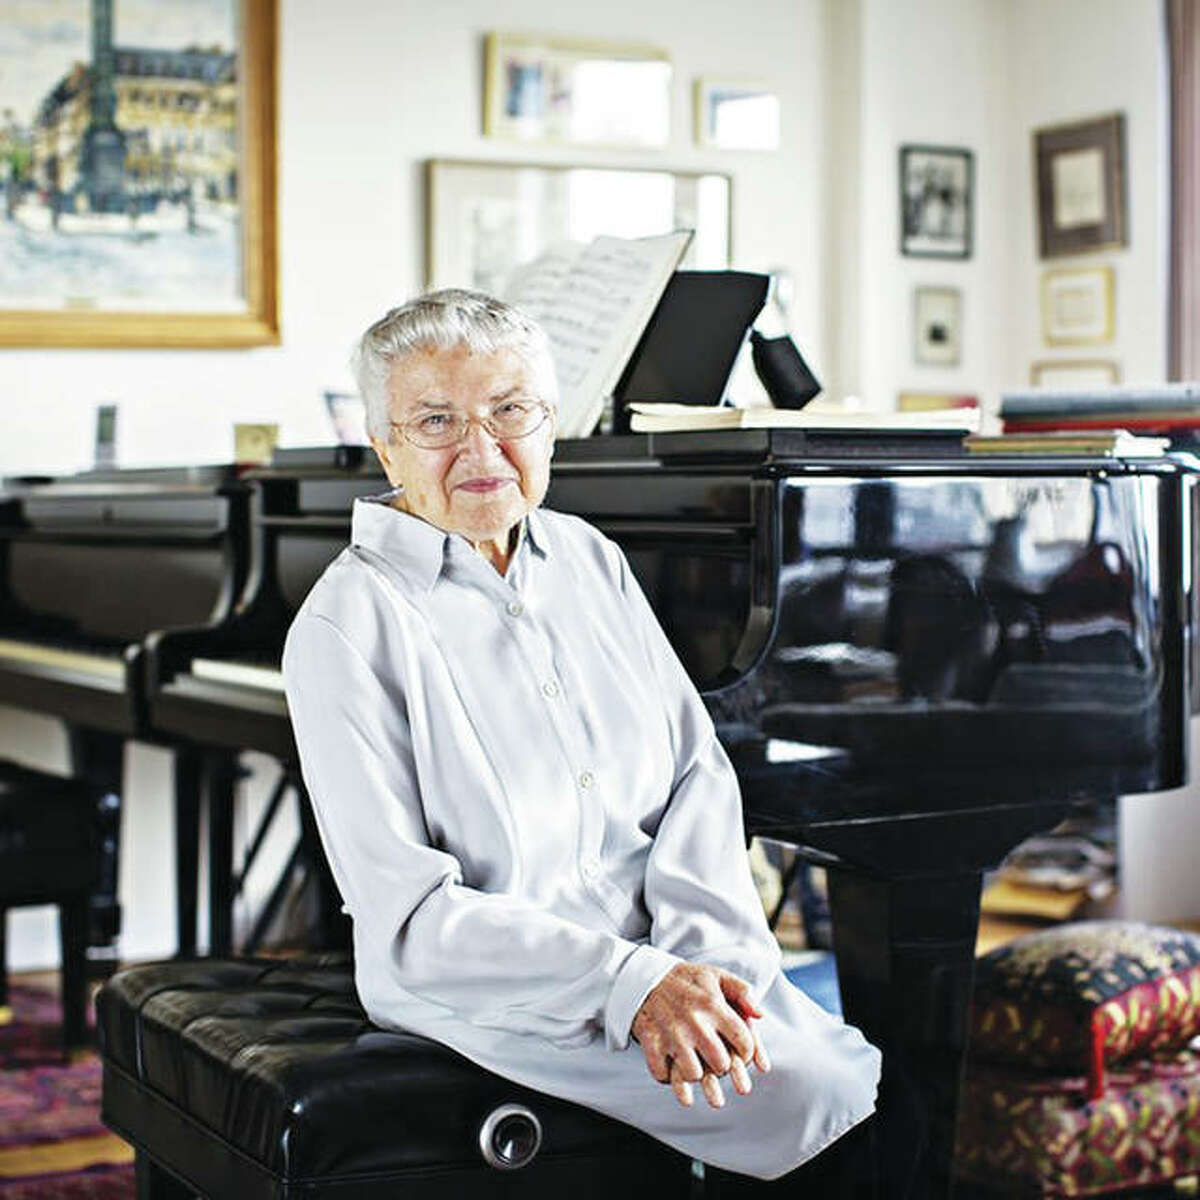 Renowned pianist and former Southern Illinois University Edwardsville artist-in-residence, Ruth Slenczynska, recently returned to SIUE, once again sharing her extraordinary talents at the keyboard to a sold-out crowd.